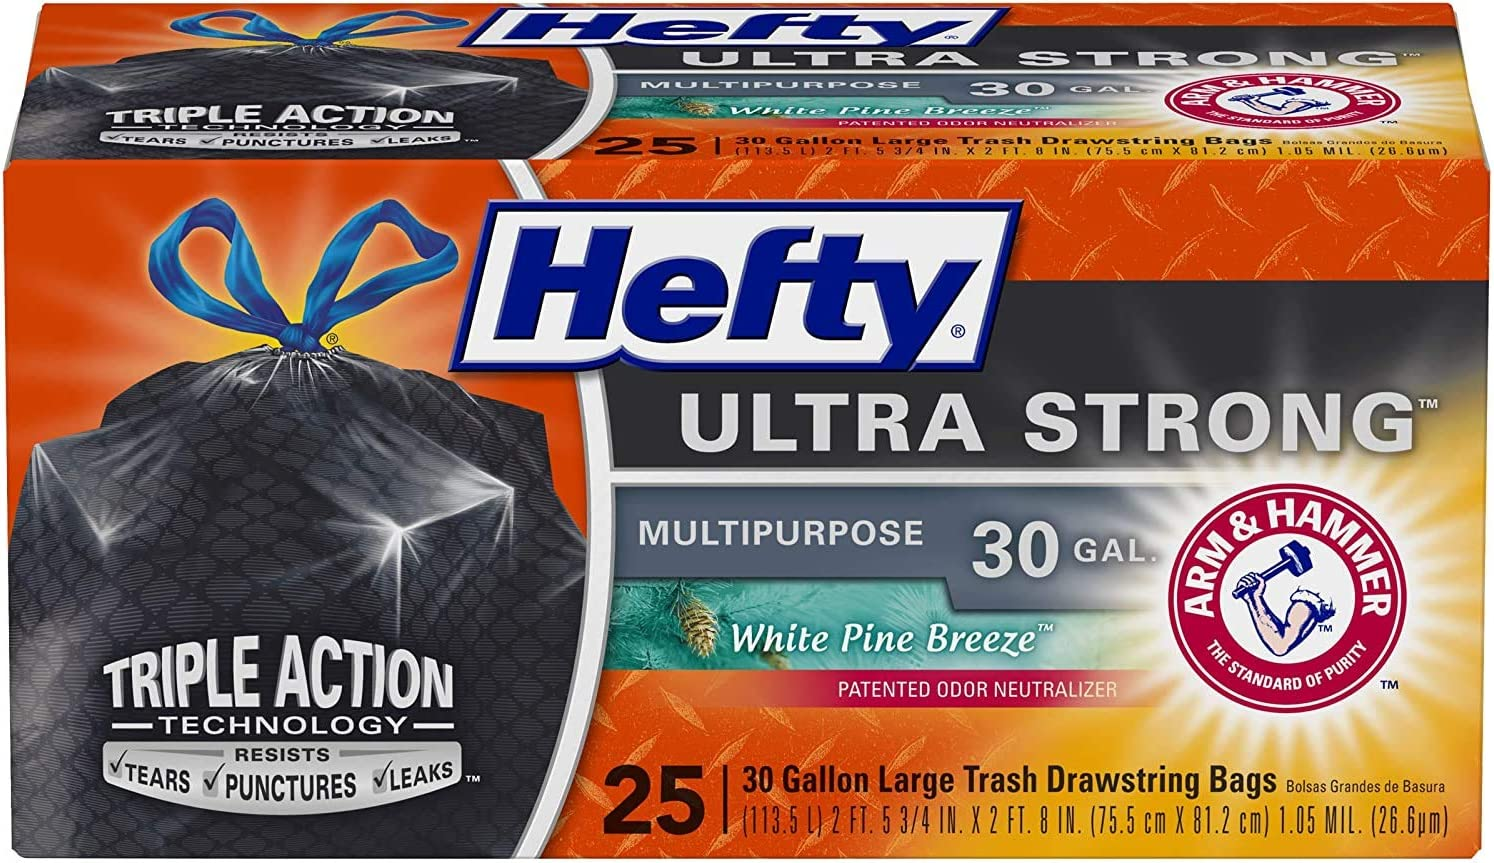 25 Count Black White Pine Breeze Scent New Version Hefty Ultra Strong Multipurpose Large Trash Bags 30 Gallon